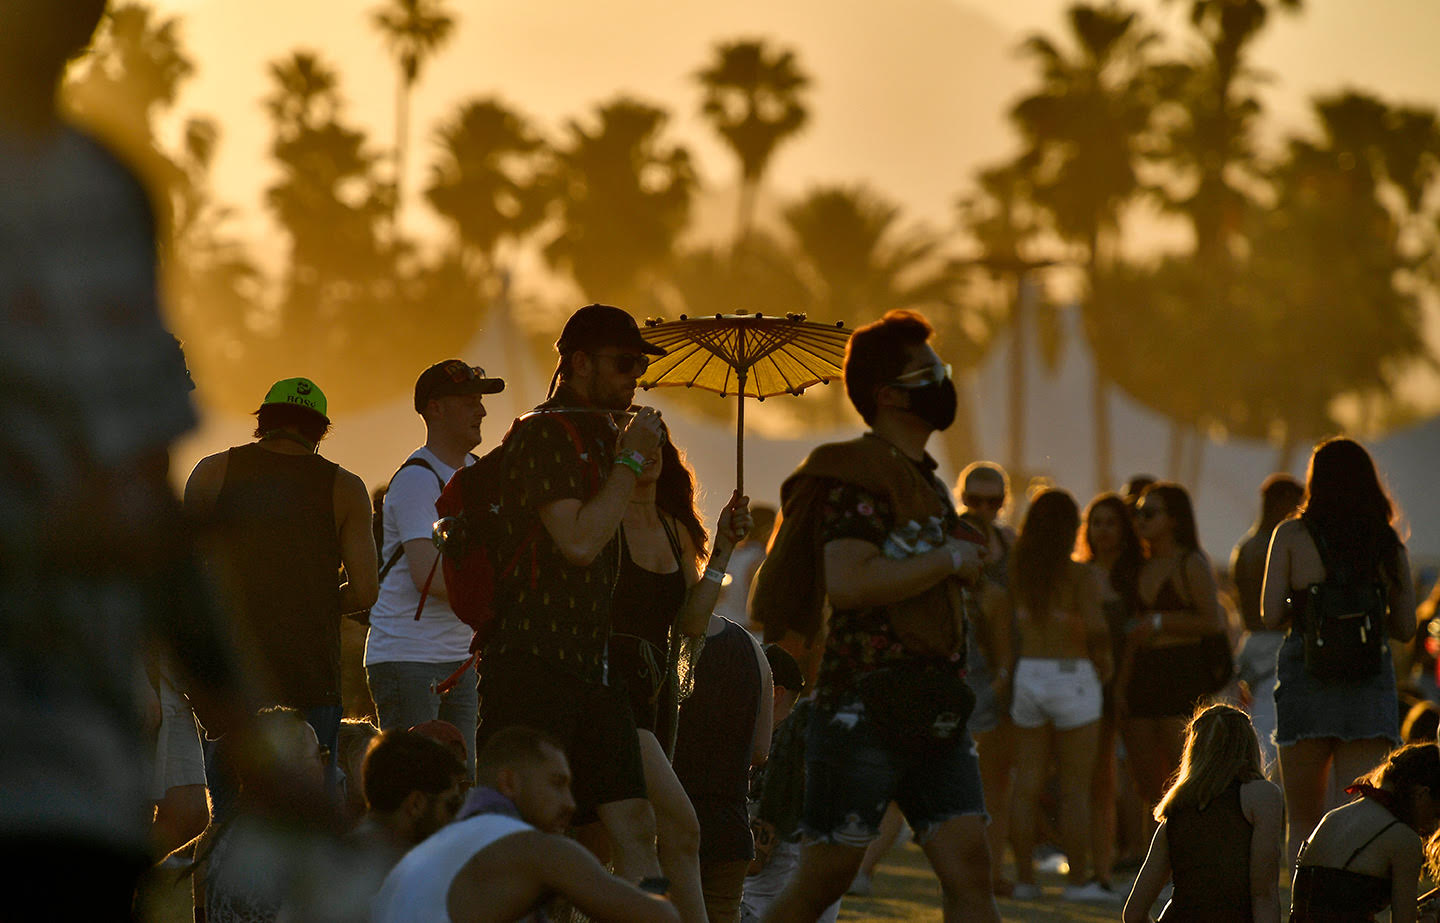 Coachella Weekend 2: Fleeting Moments In Brazen Heat